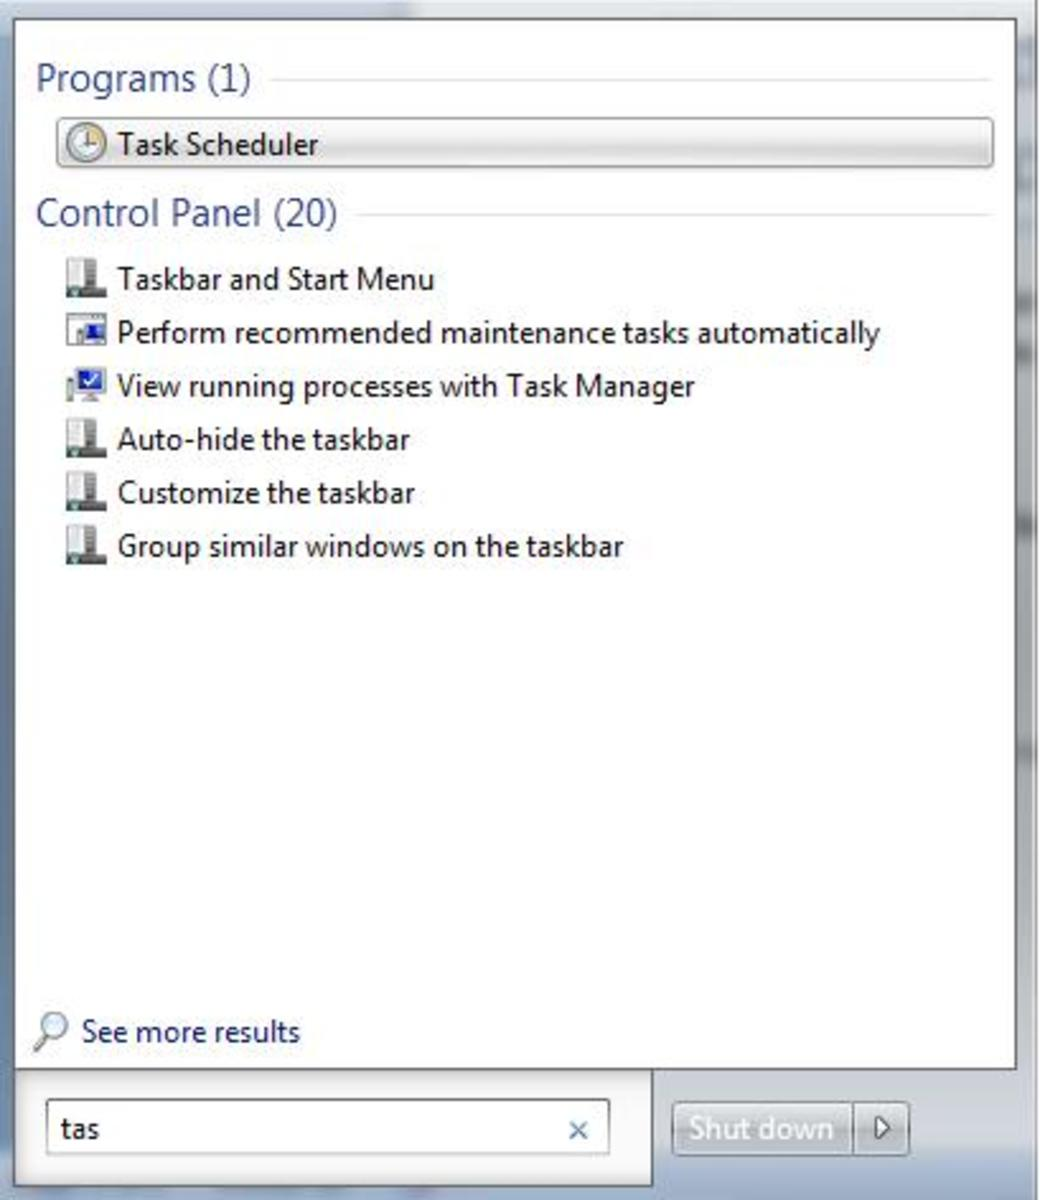 Select Create Basic Task from the Actions pane on the right of the window.